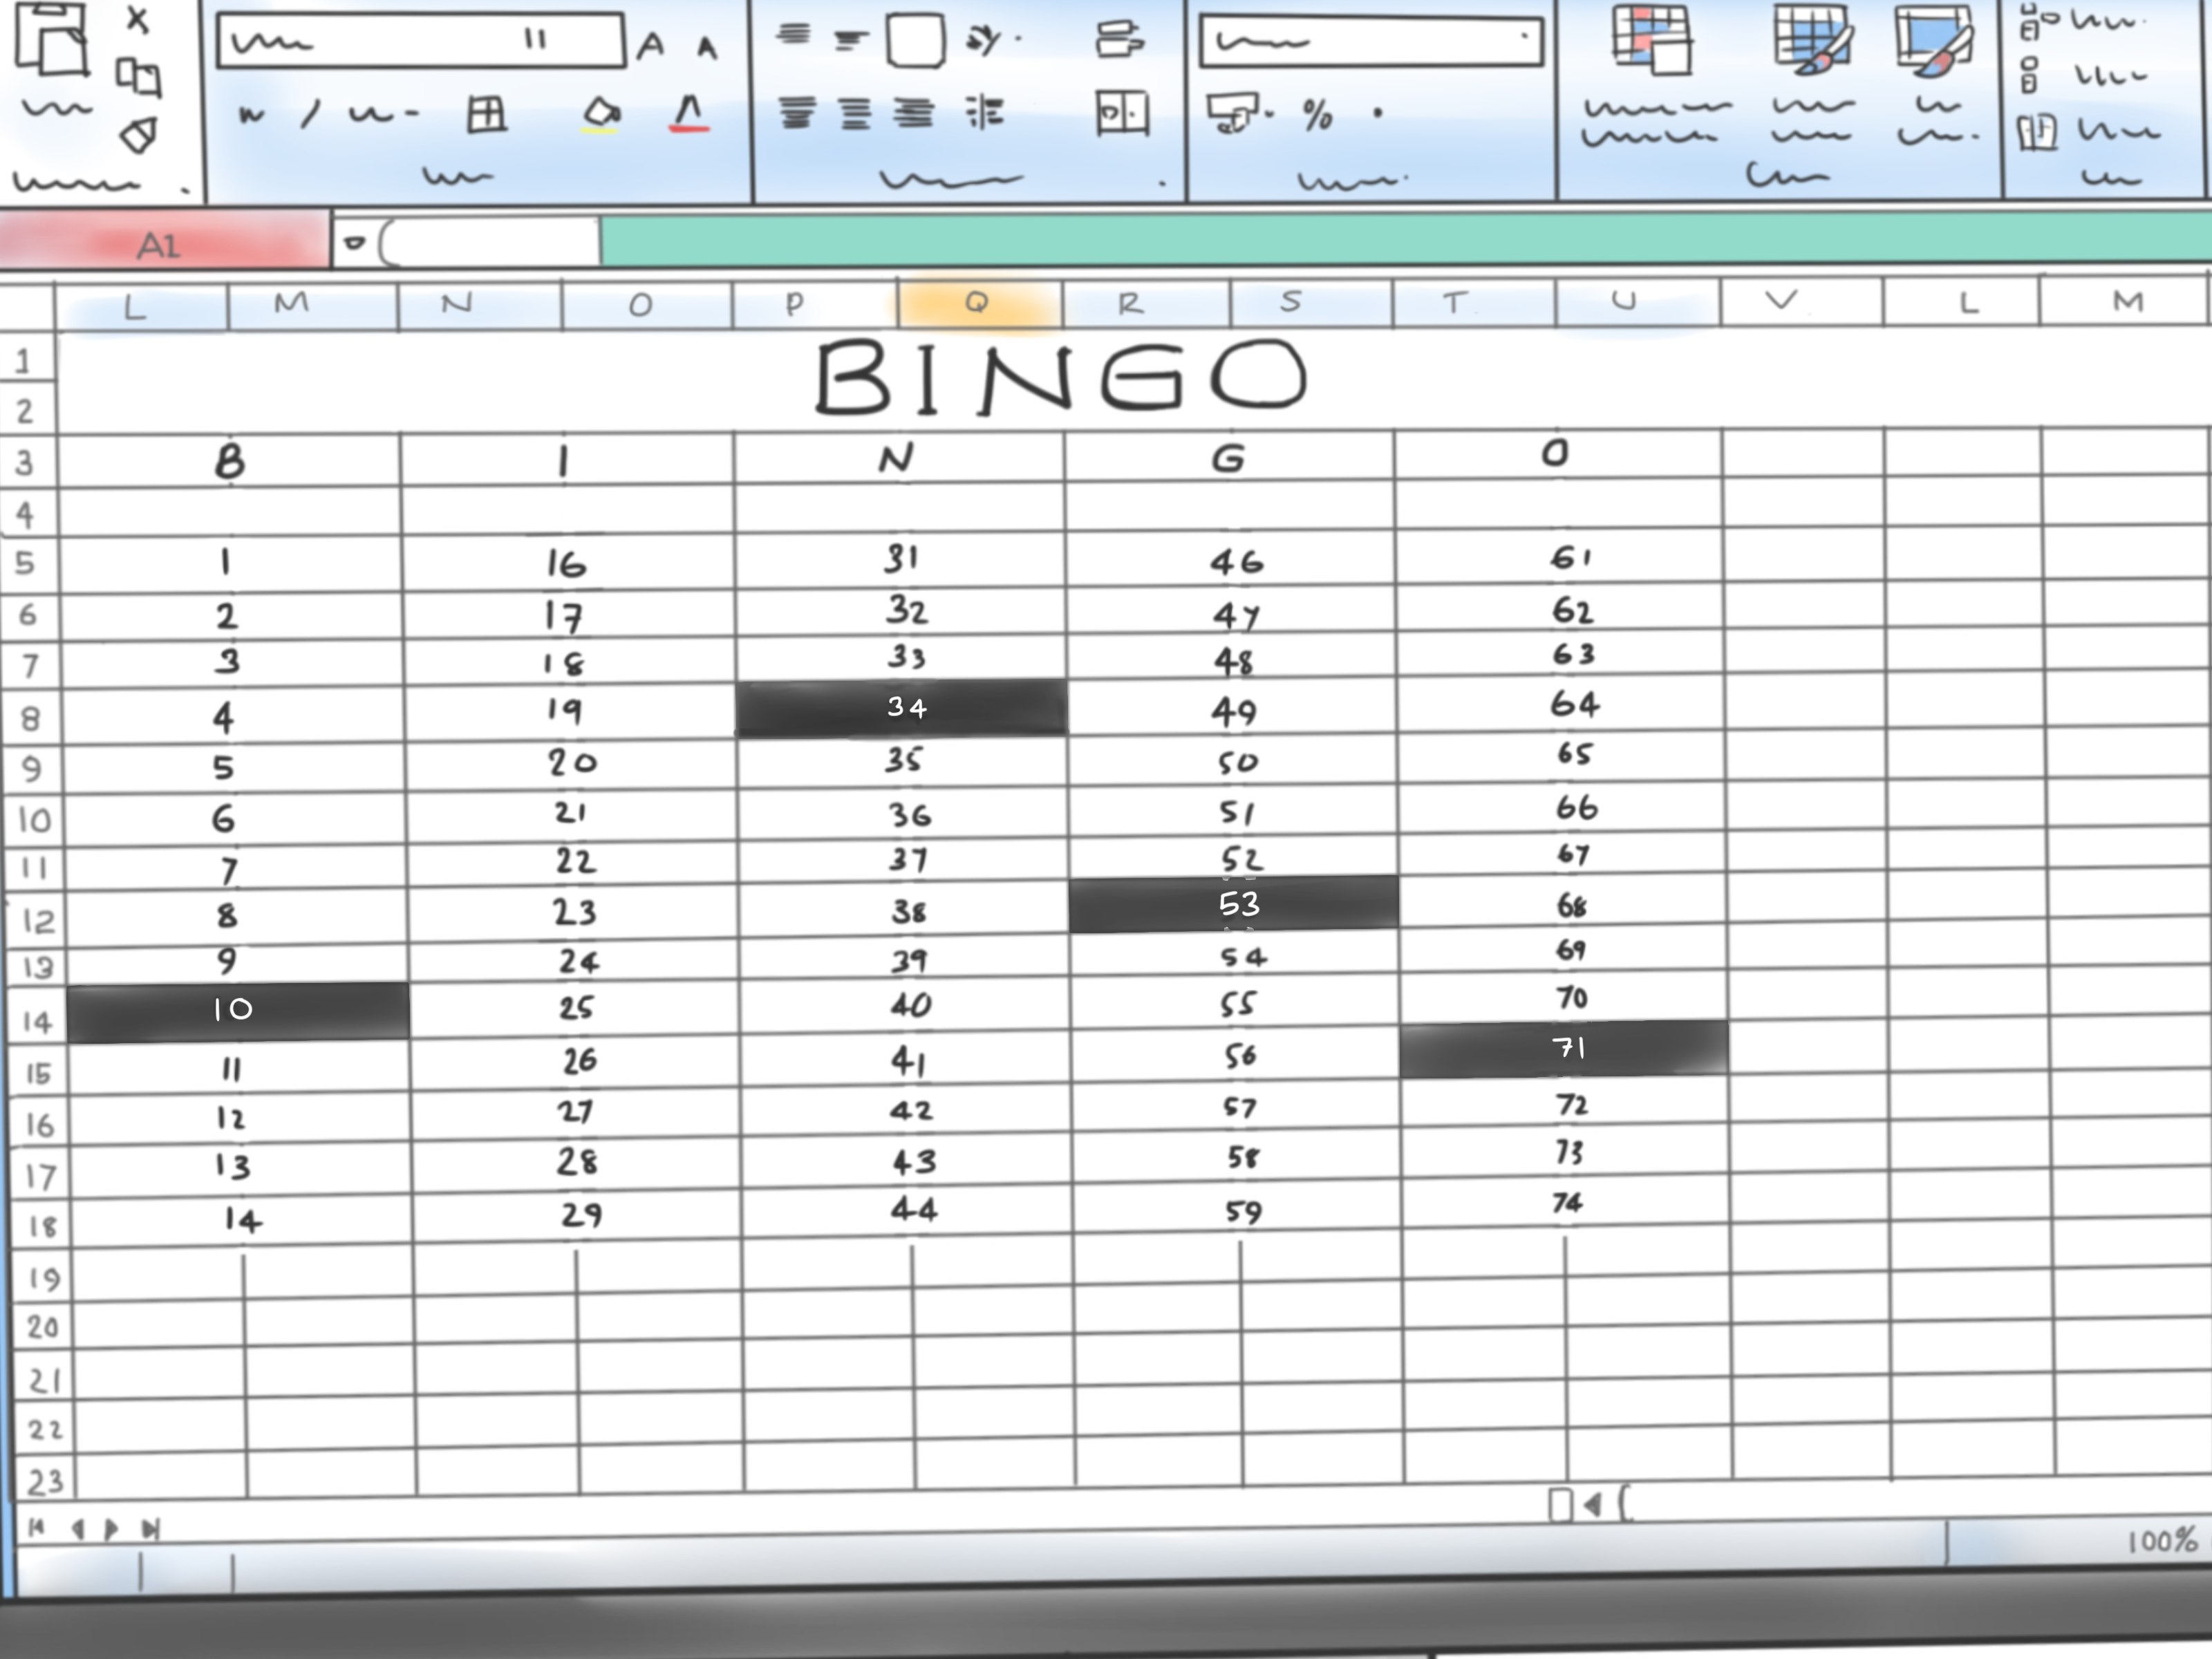 Bingo Spreadsheet Template For How To Make A Bingo Game In Microsoft Office Excel 2007: 9 Steps